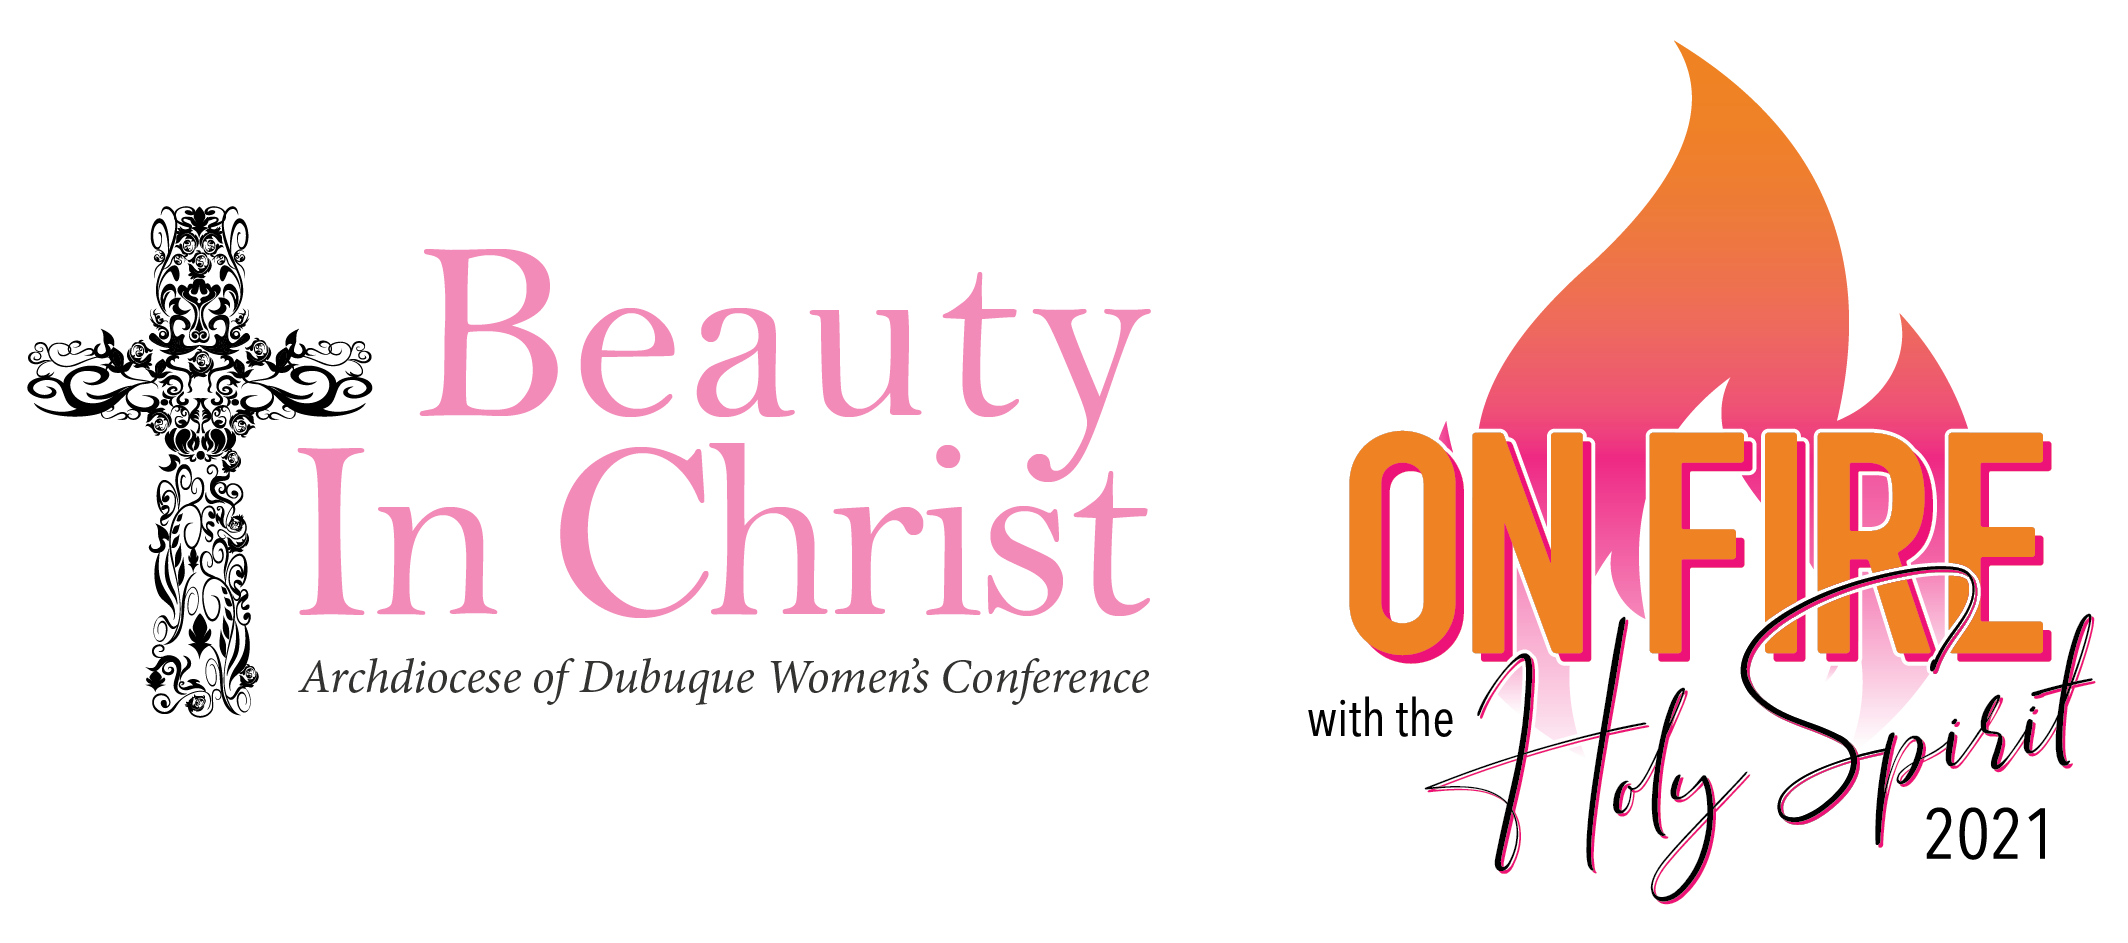 Archdiocese of Dubuque Beauty in Christ Women's Conference